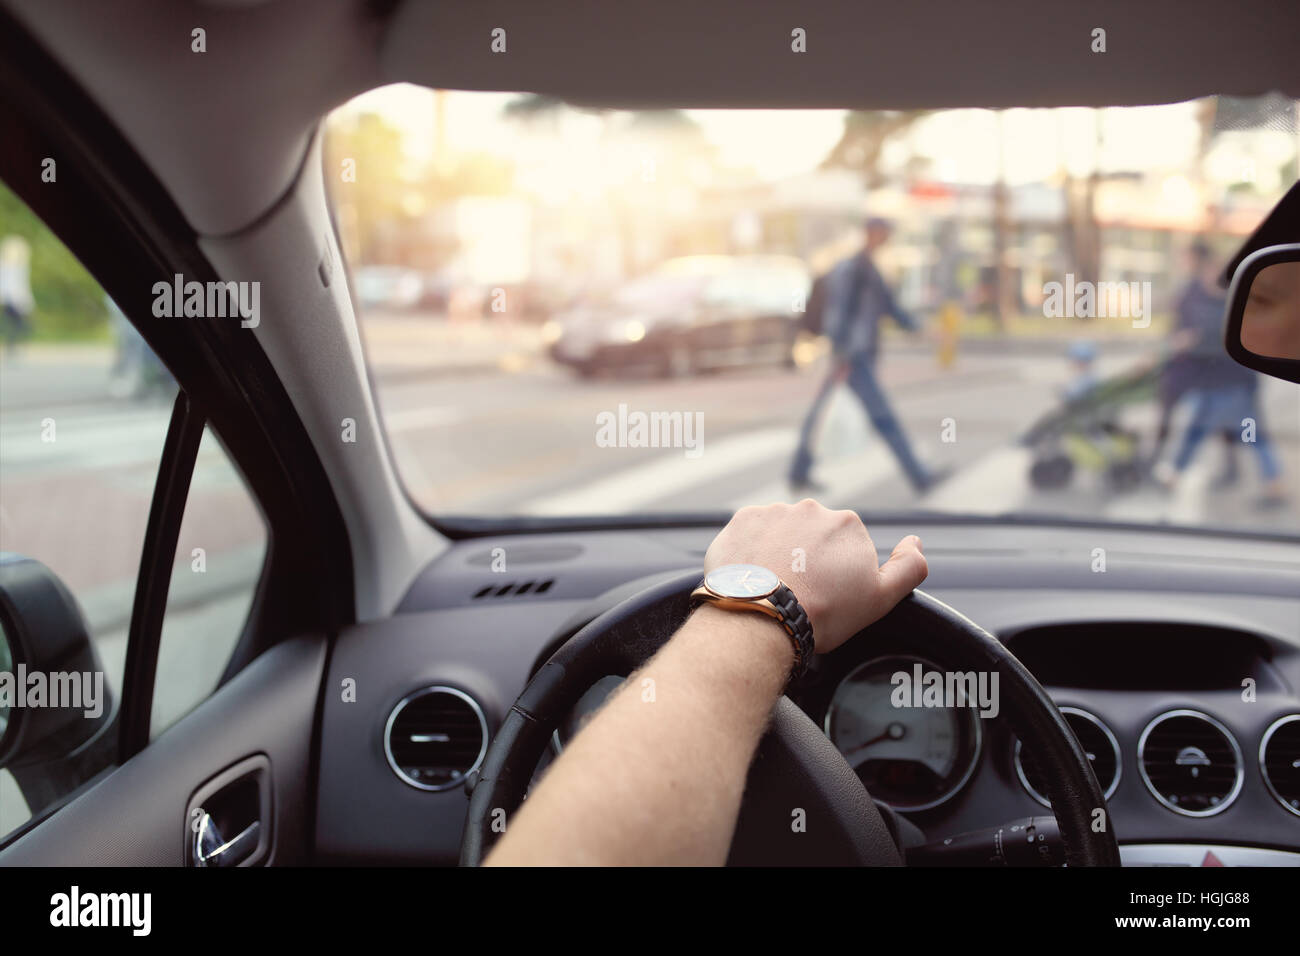 Pedestrian crossing for pedestrians - Stock Image